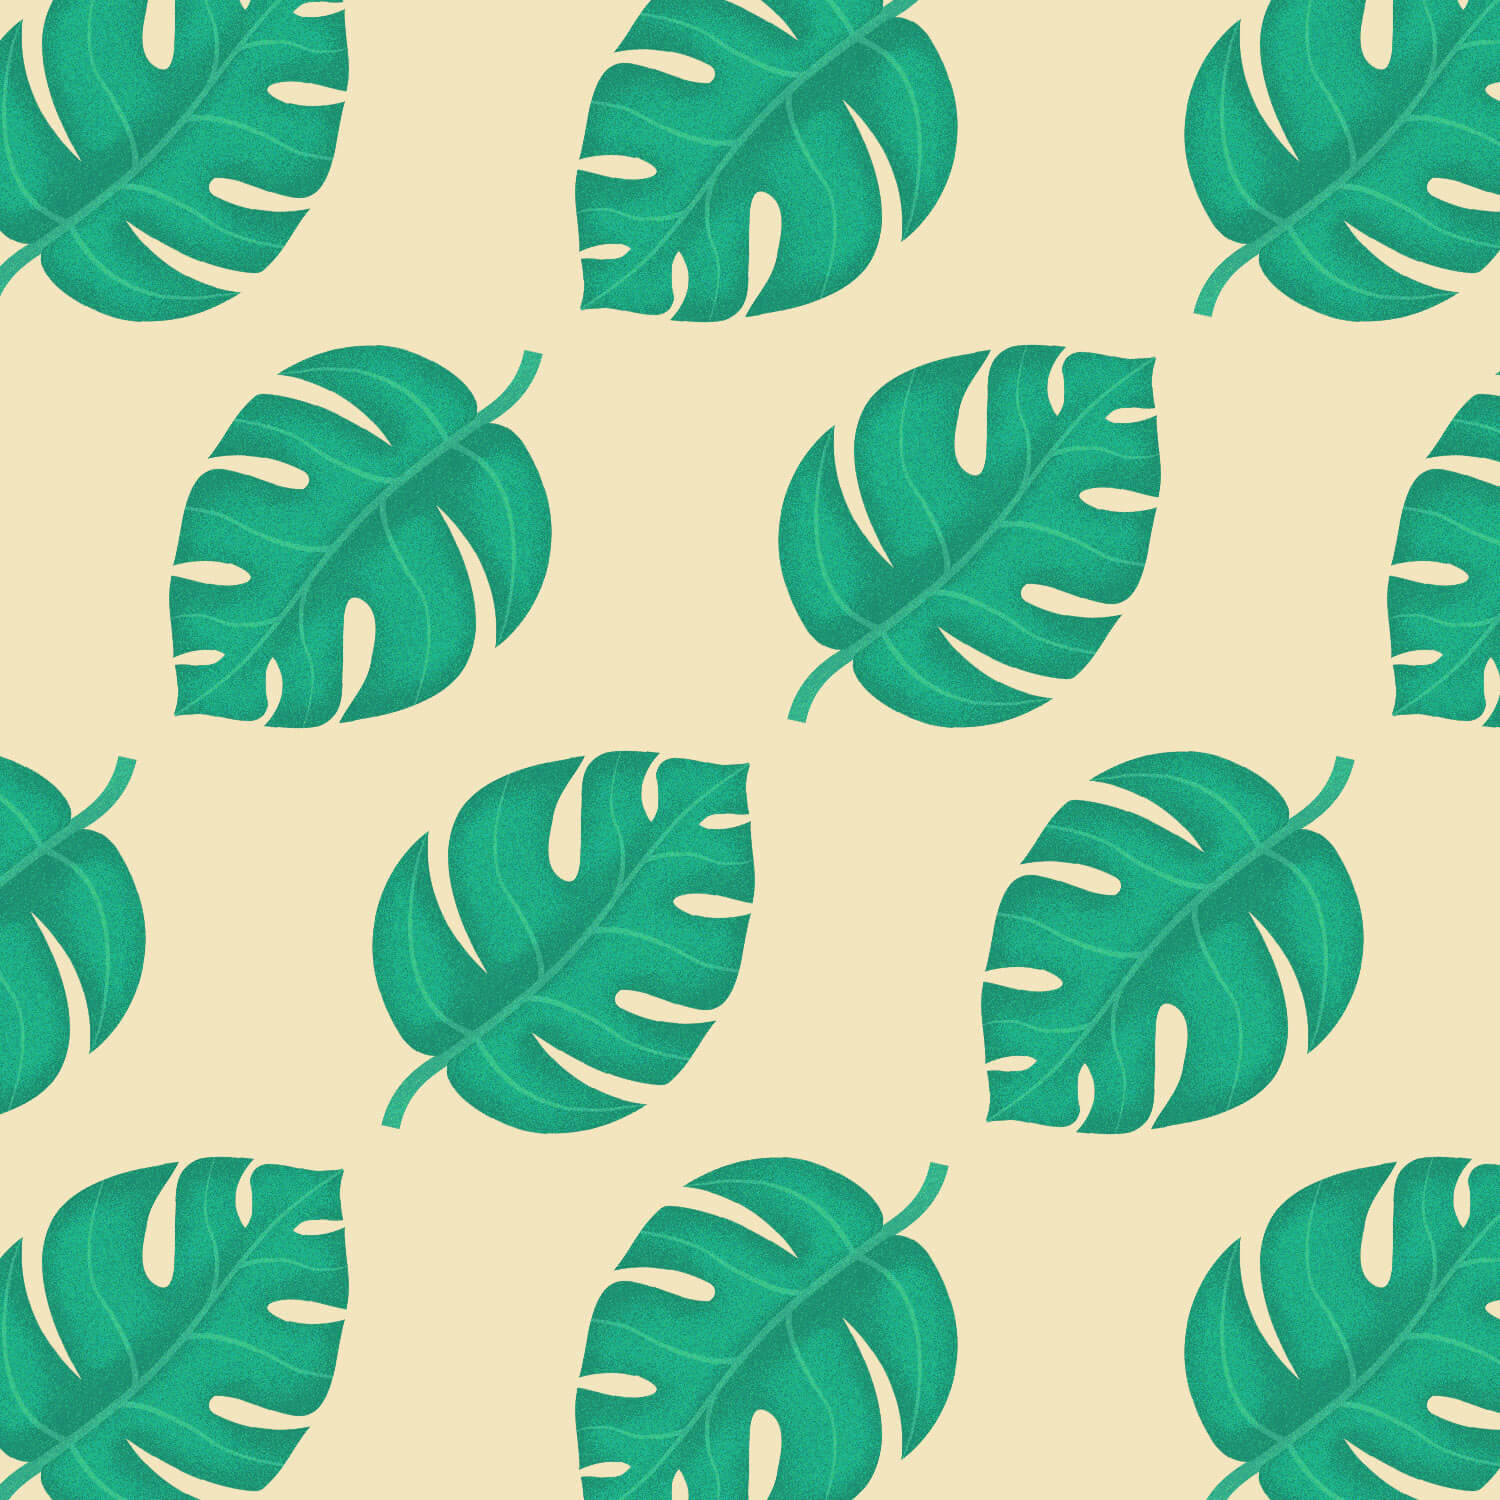 things_leafpattern